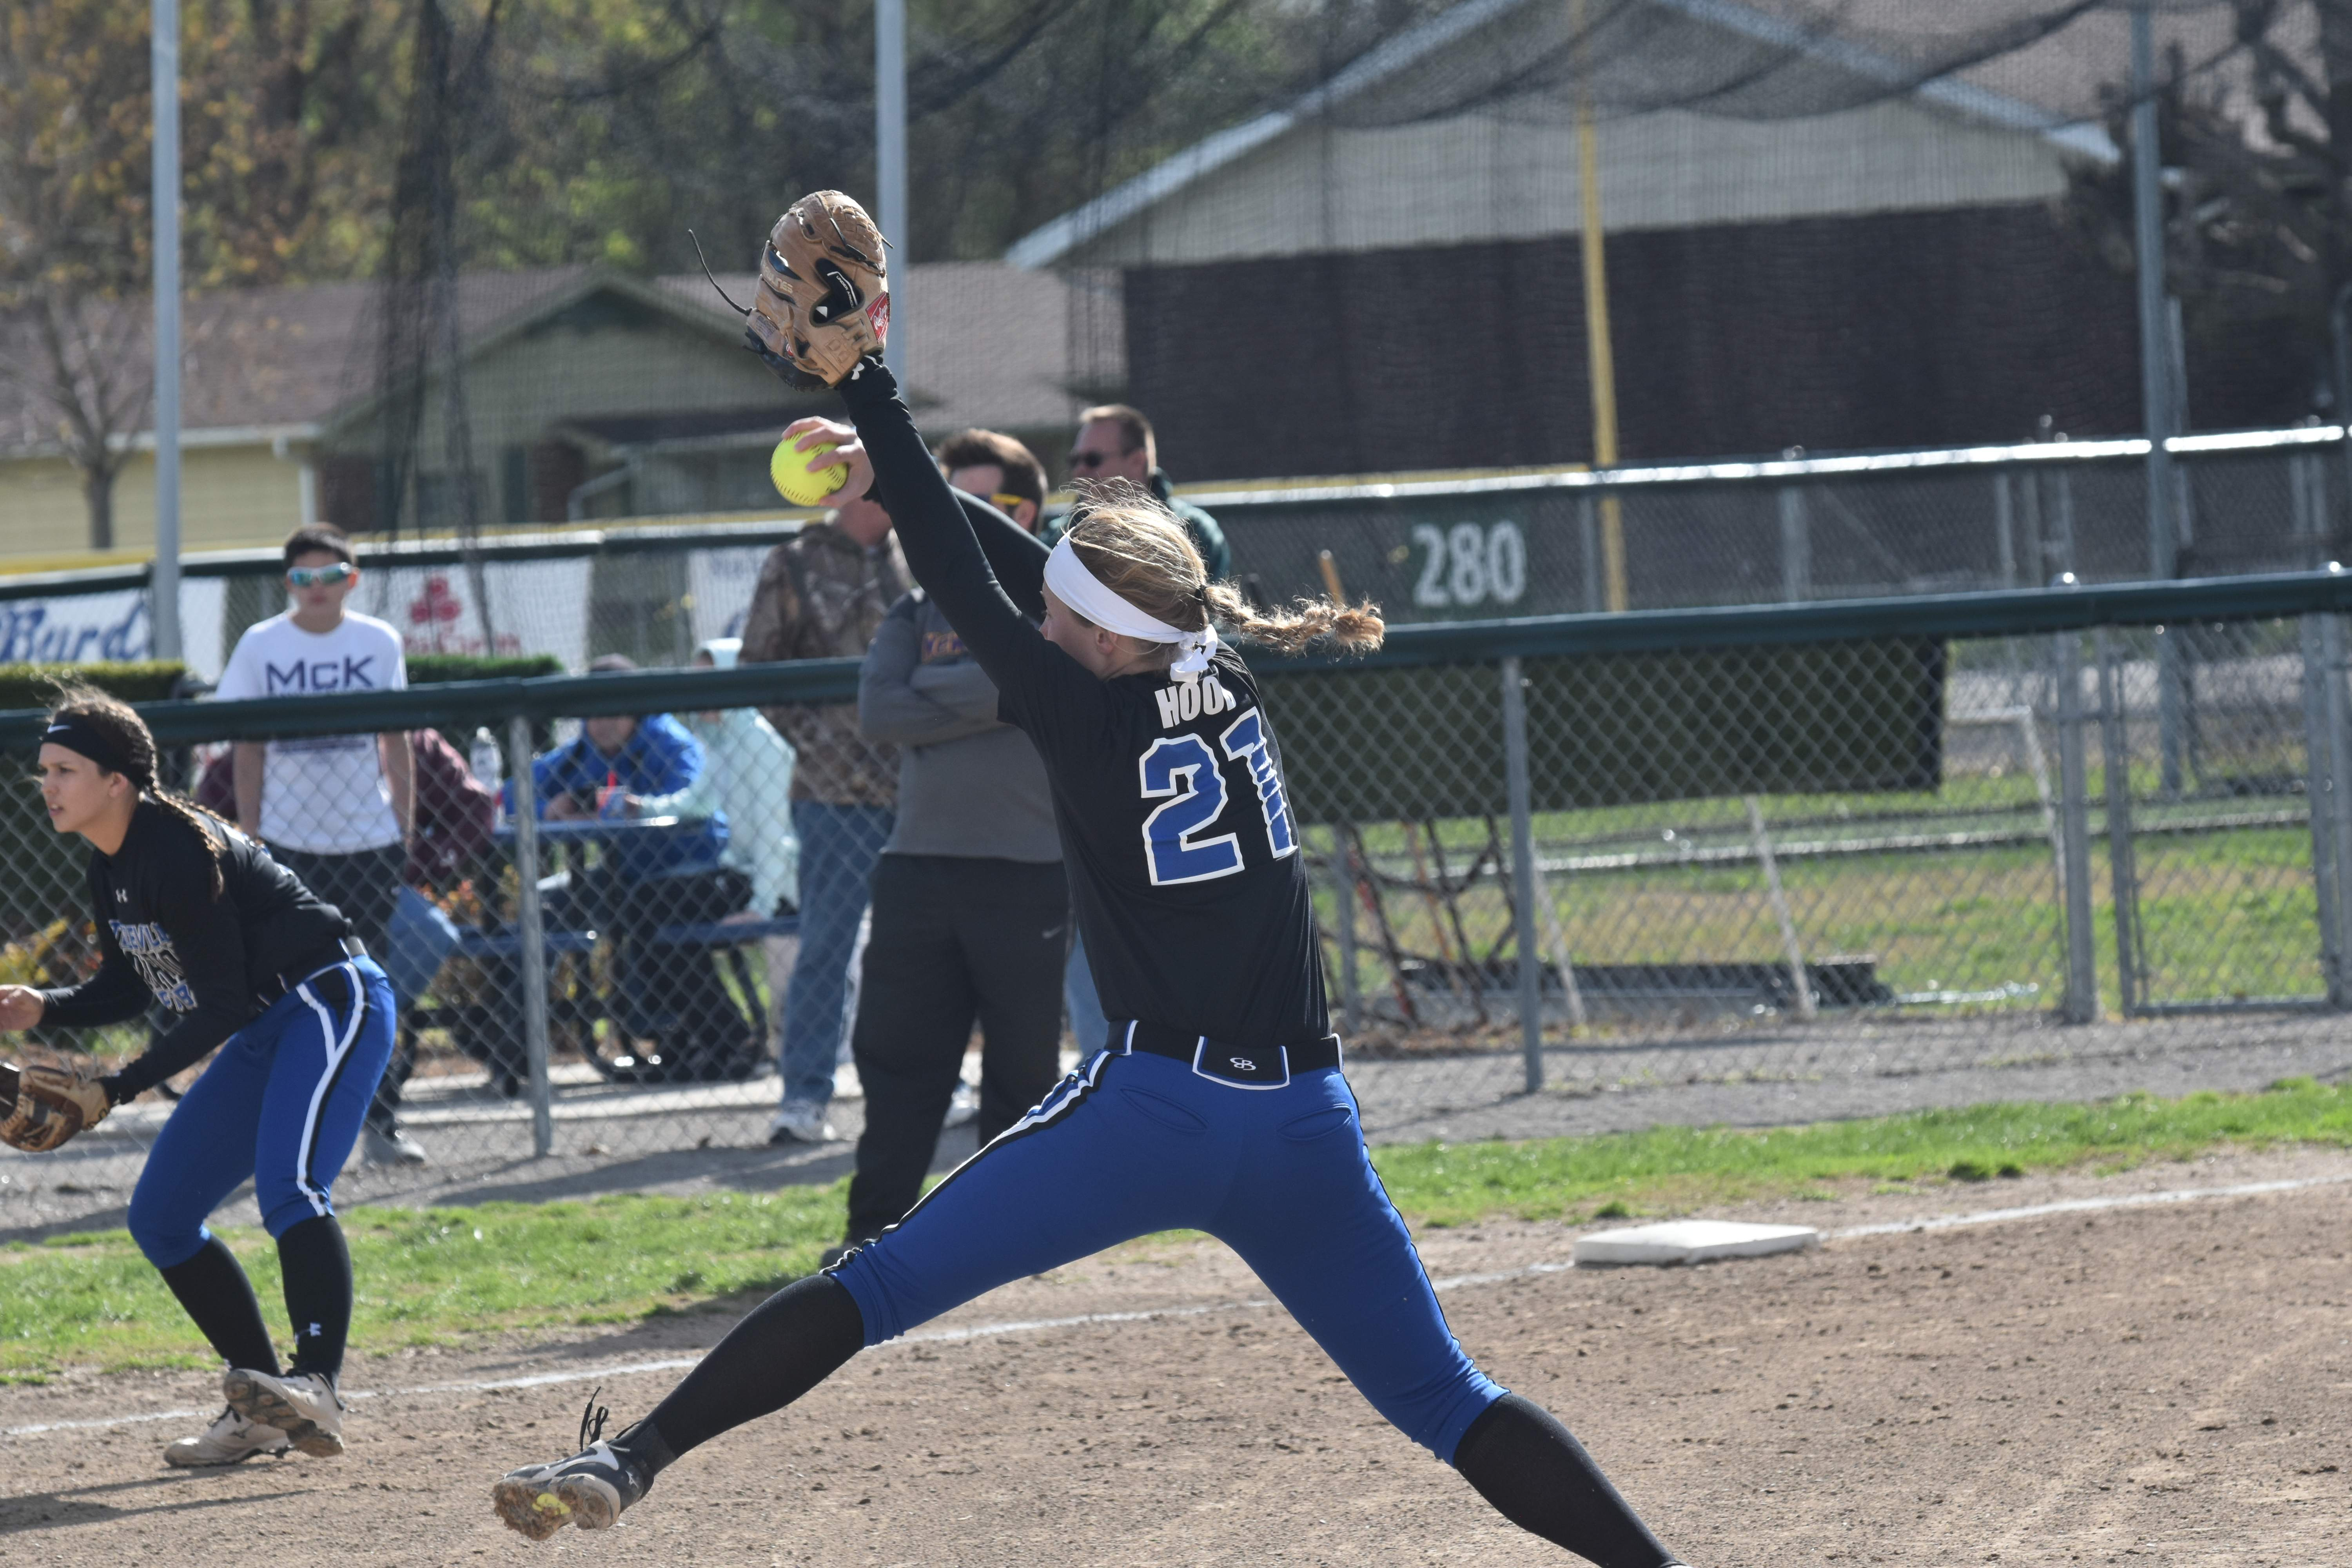 Steeleville juniors Sydney Hood and Lexi Middendorf were recently selected to the All-South softball team by the Southern Illinois Coaches Association. Pictured is Hood throwing a pitch for the Lady Warriors last season.